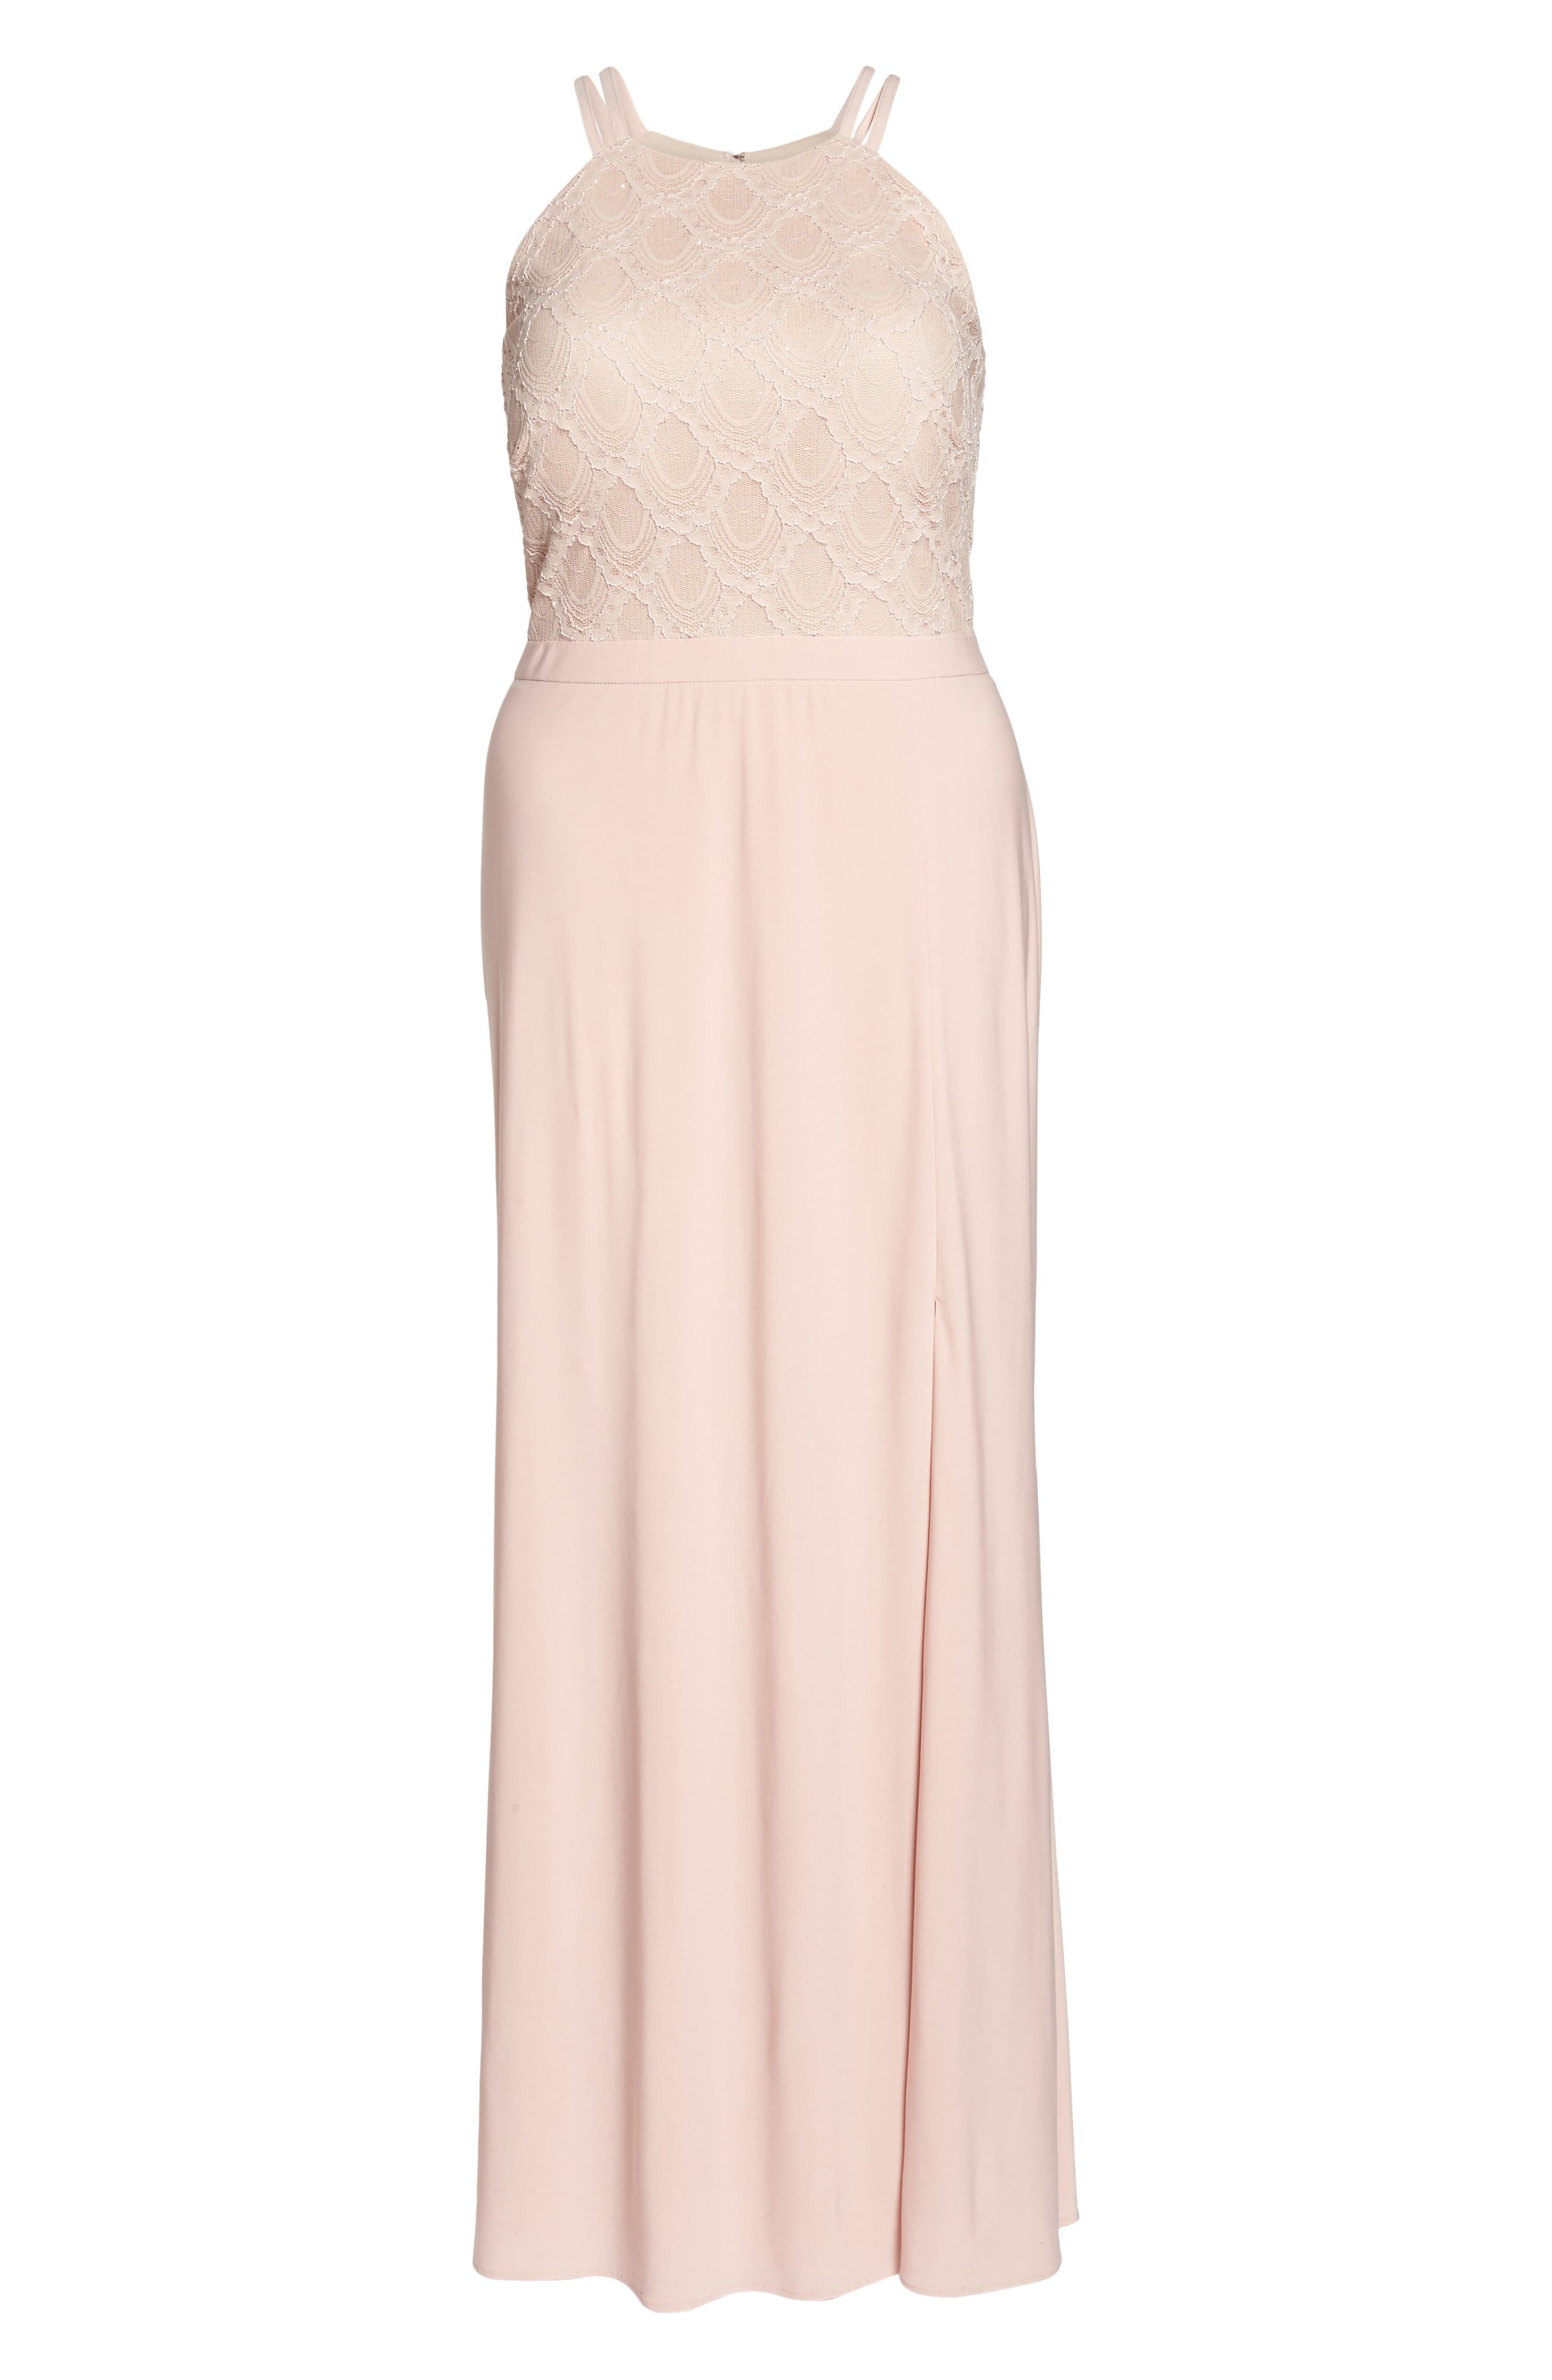 Lace Bodice Gown,                             Alternate thumbnail 6, color,                             BLUSH/ NUDE